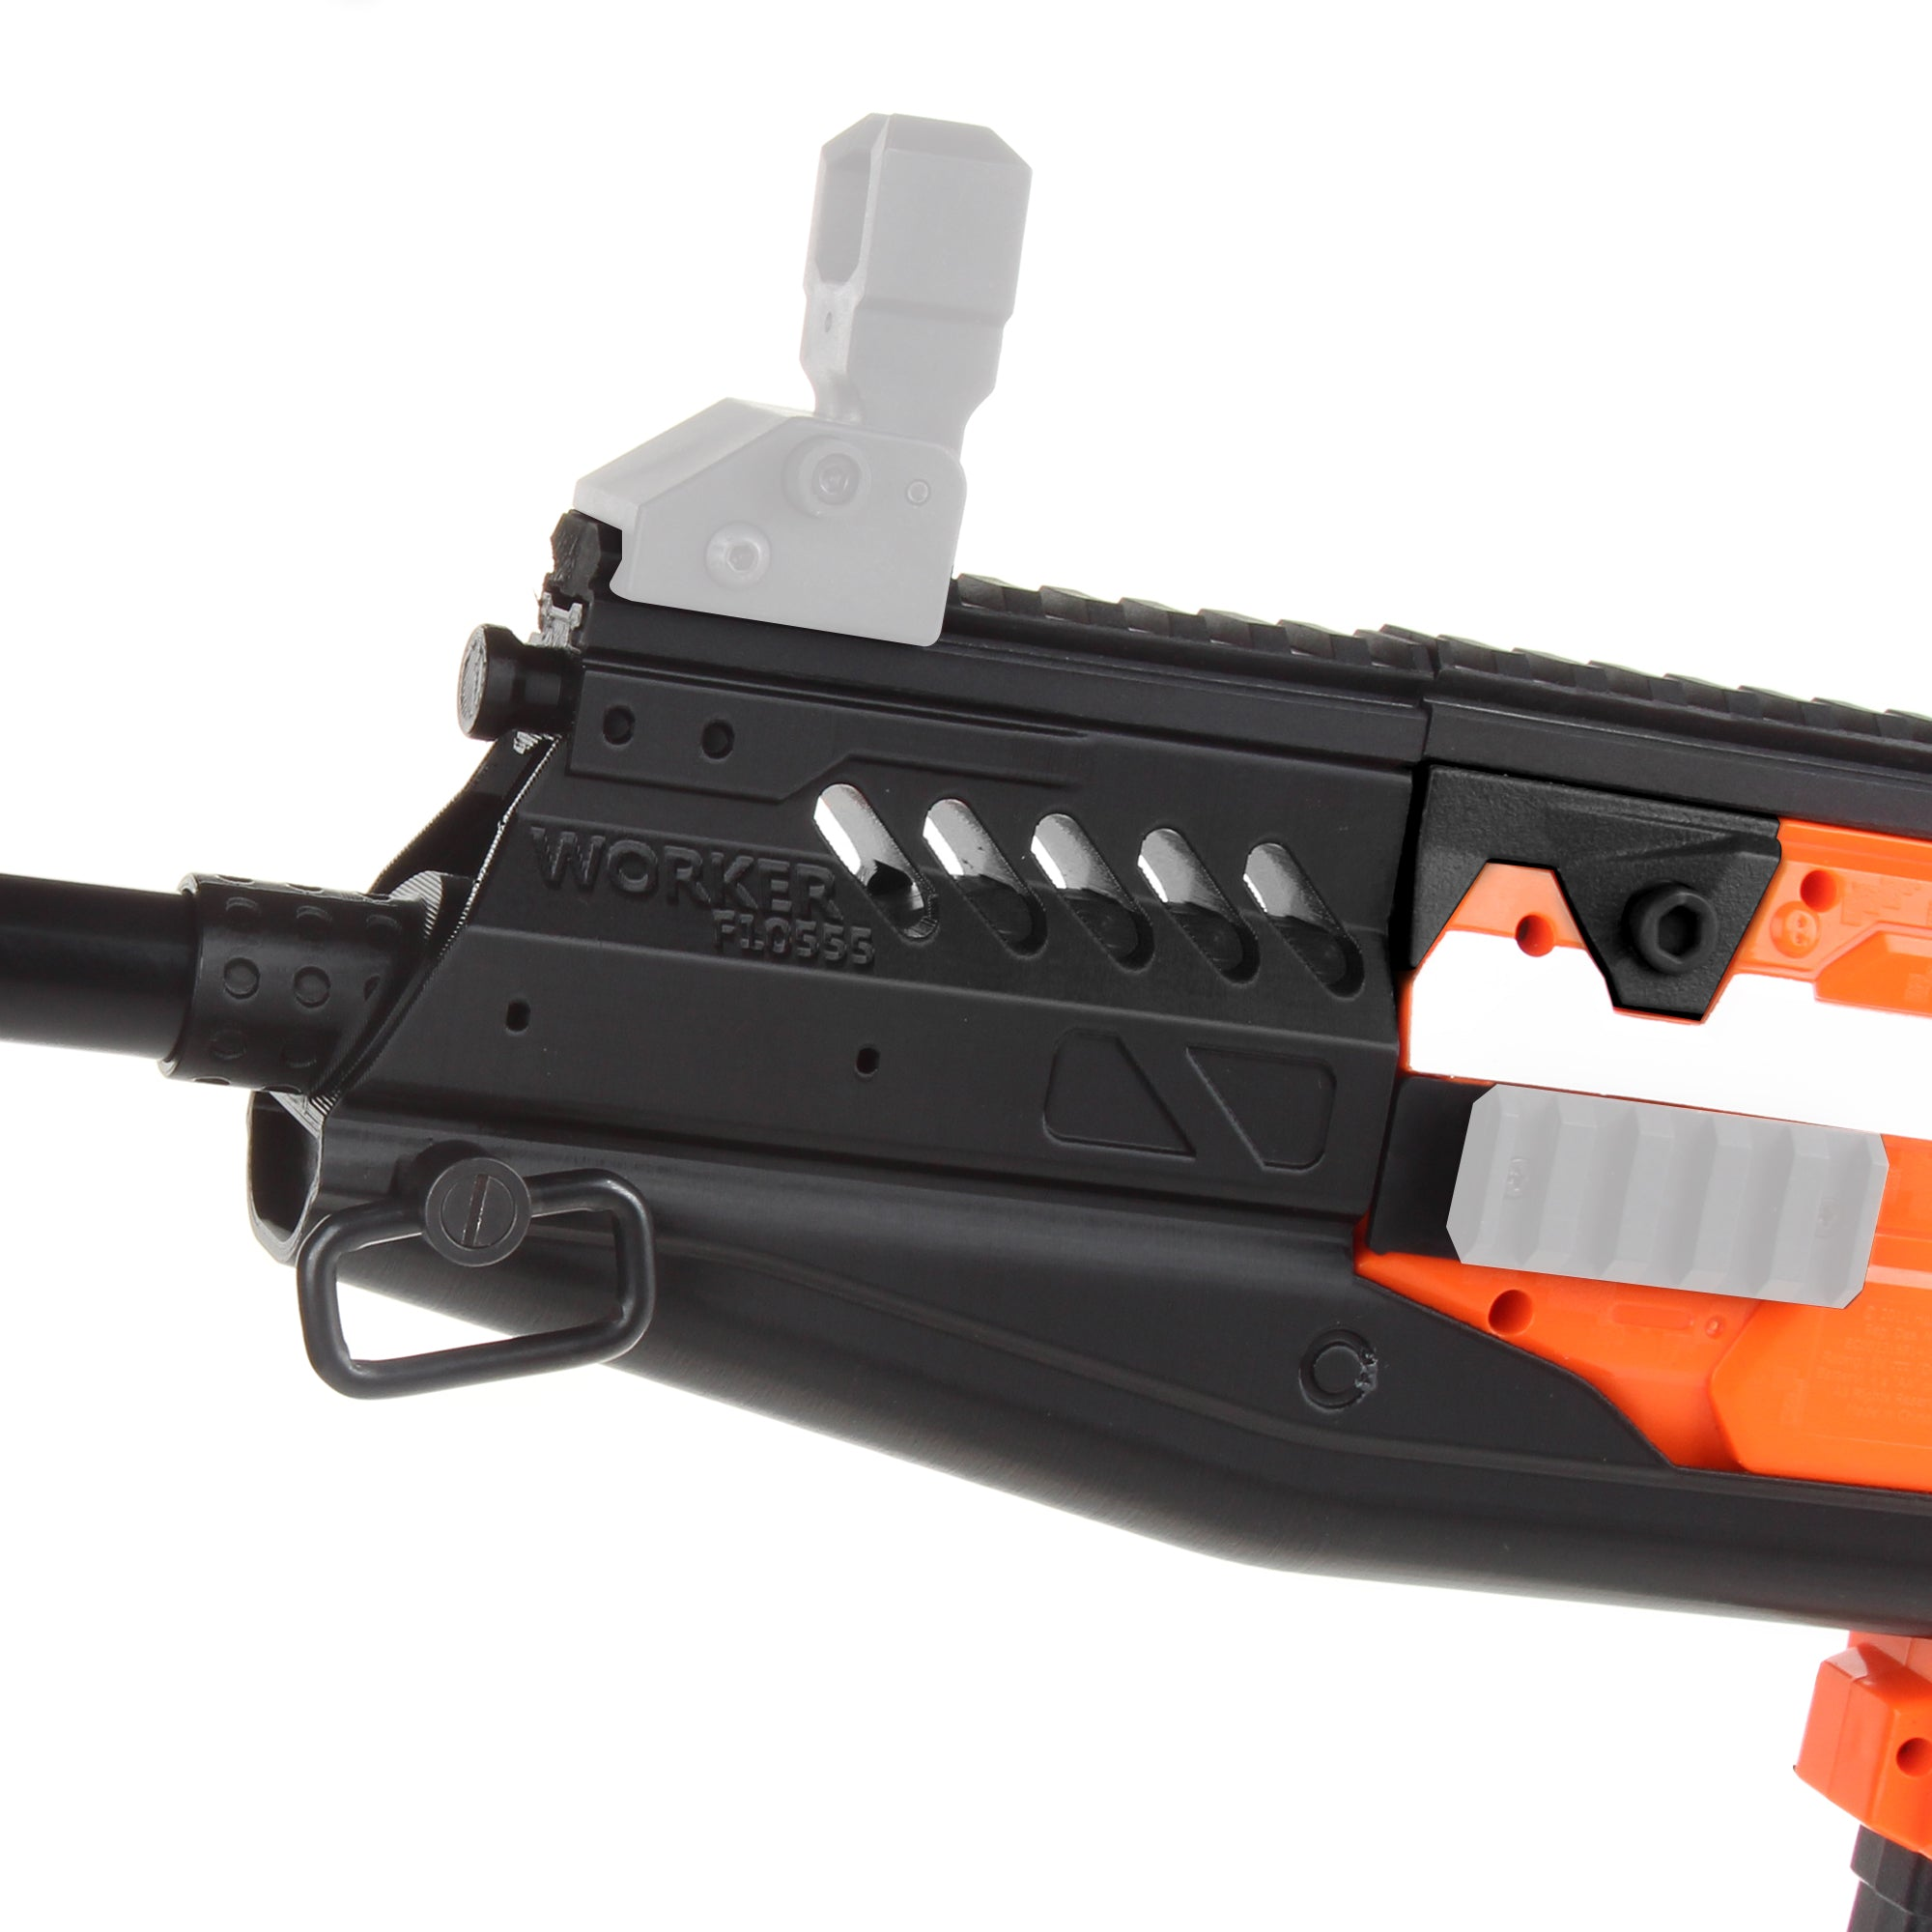 JGCWorker STF-W022 Submarine Style Mod Kits Set With Black Adaptor for Nerf N-Strike Elite Stryfe Blaster - Nerf Mod Kits -Worker Mod Kits